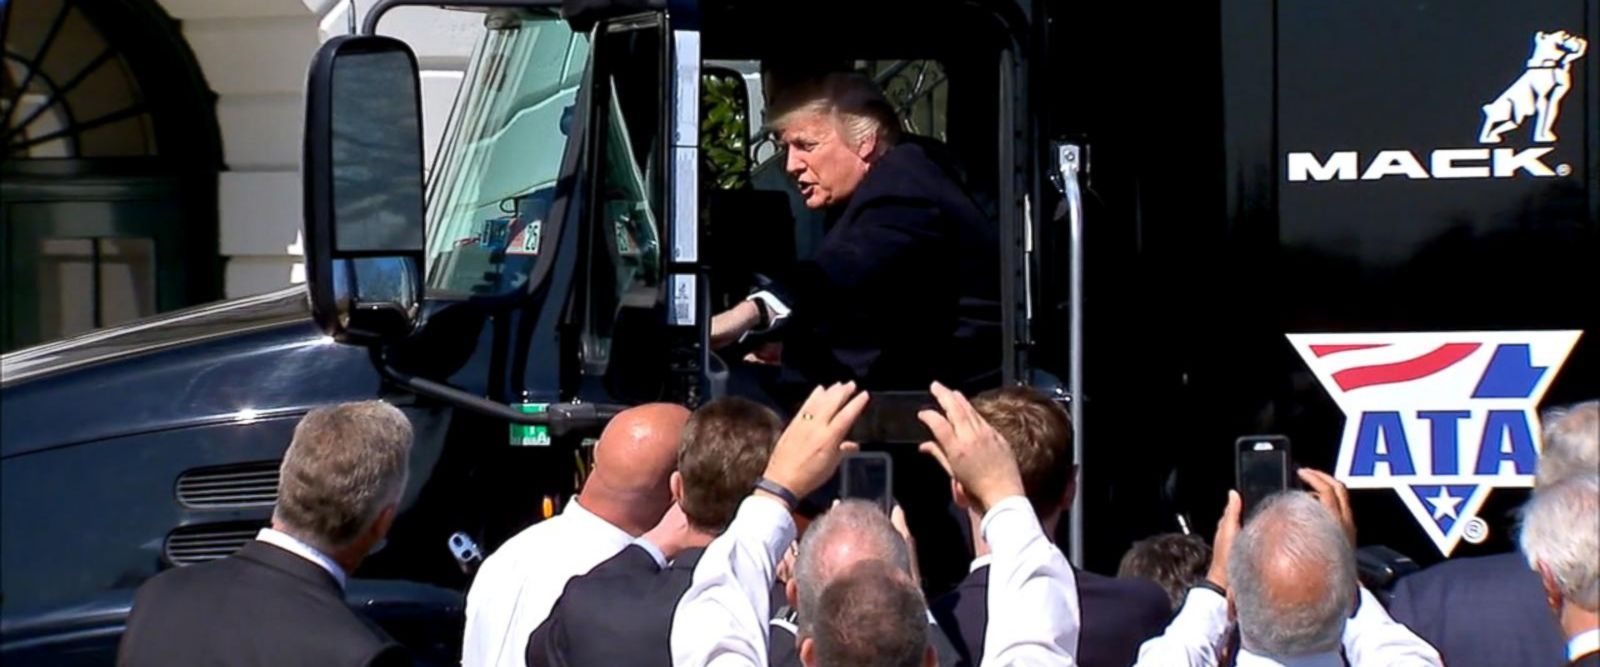 VIDEO: Donald Trump shows off his trucking skills